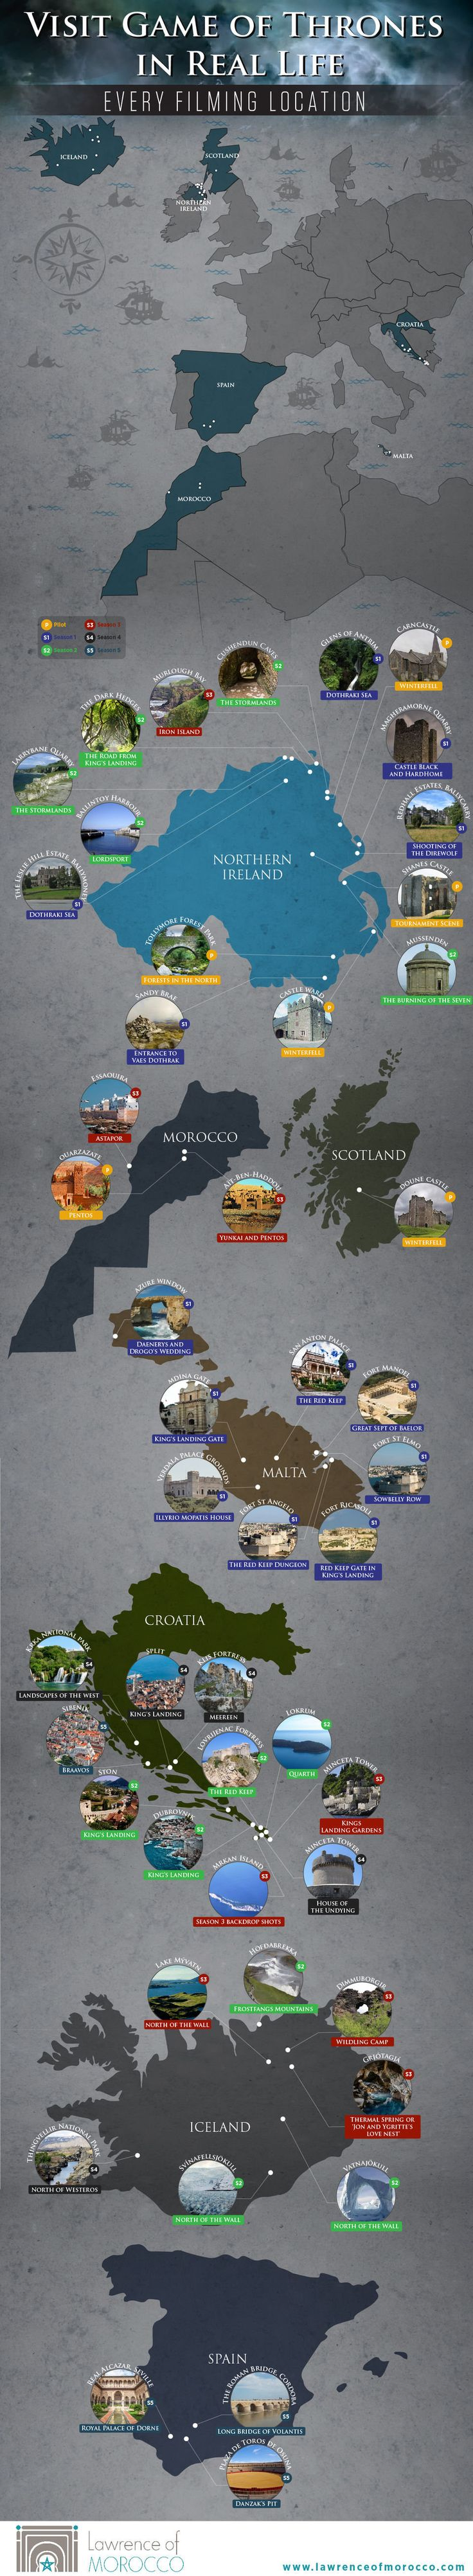 GAME OF THRONES: Map of Every Filming Location